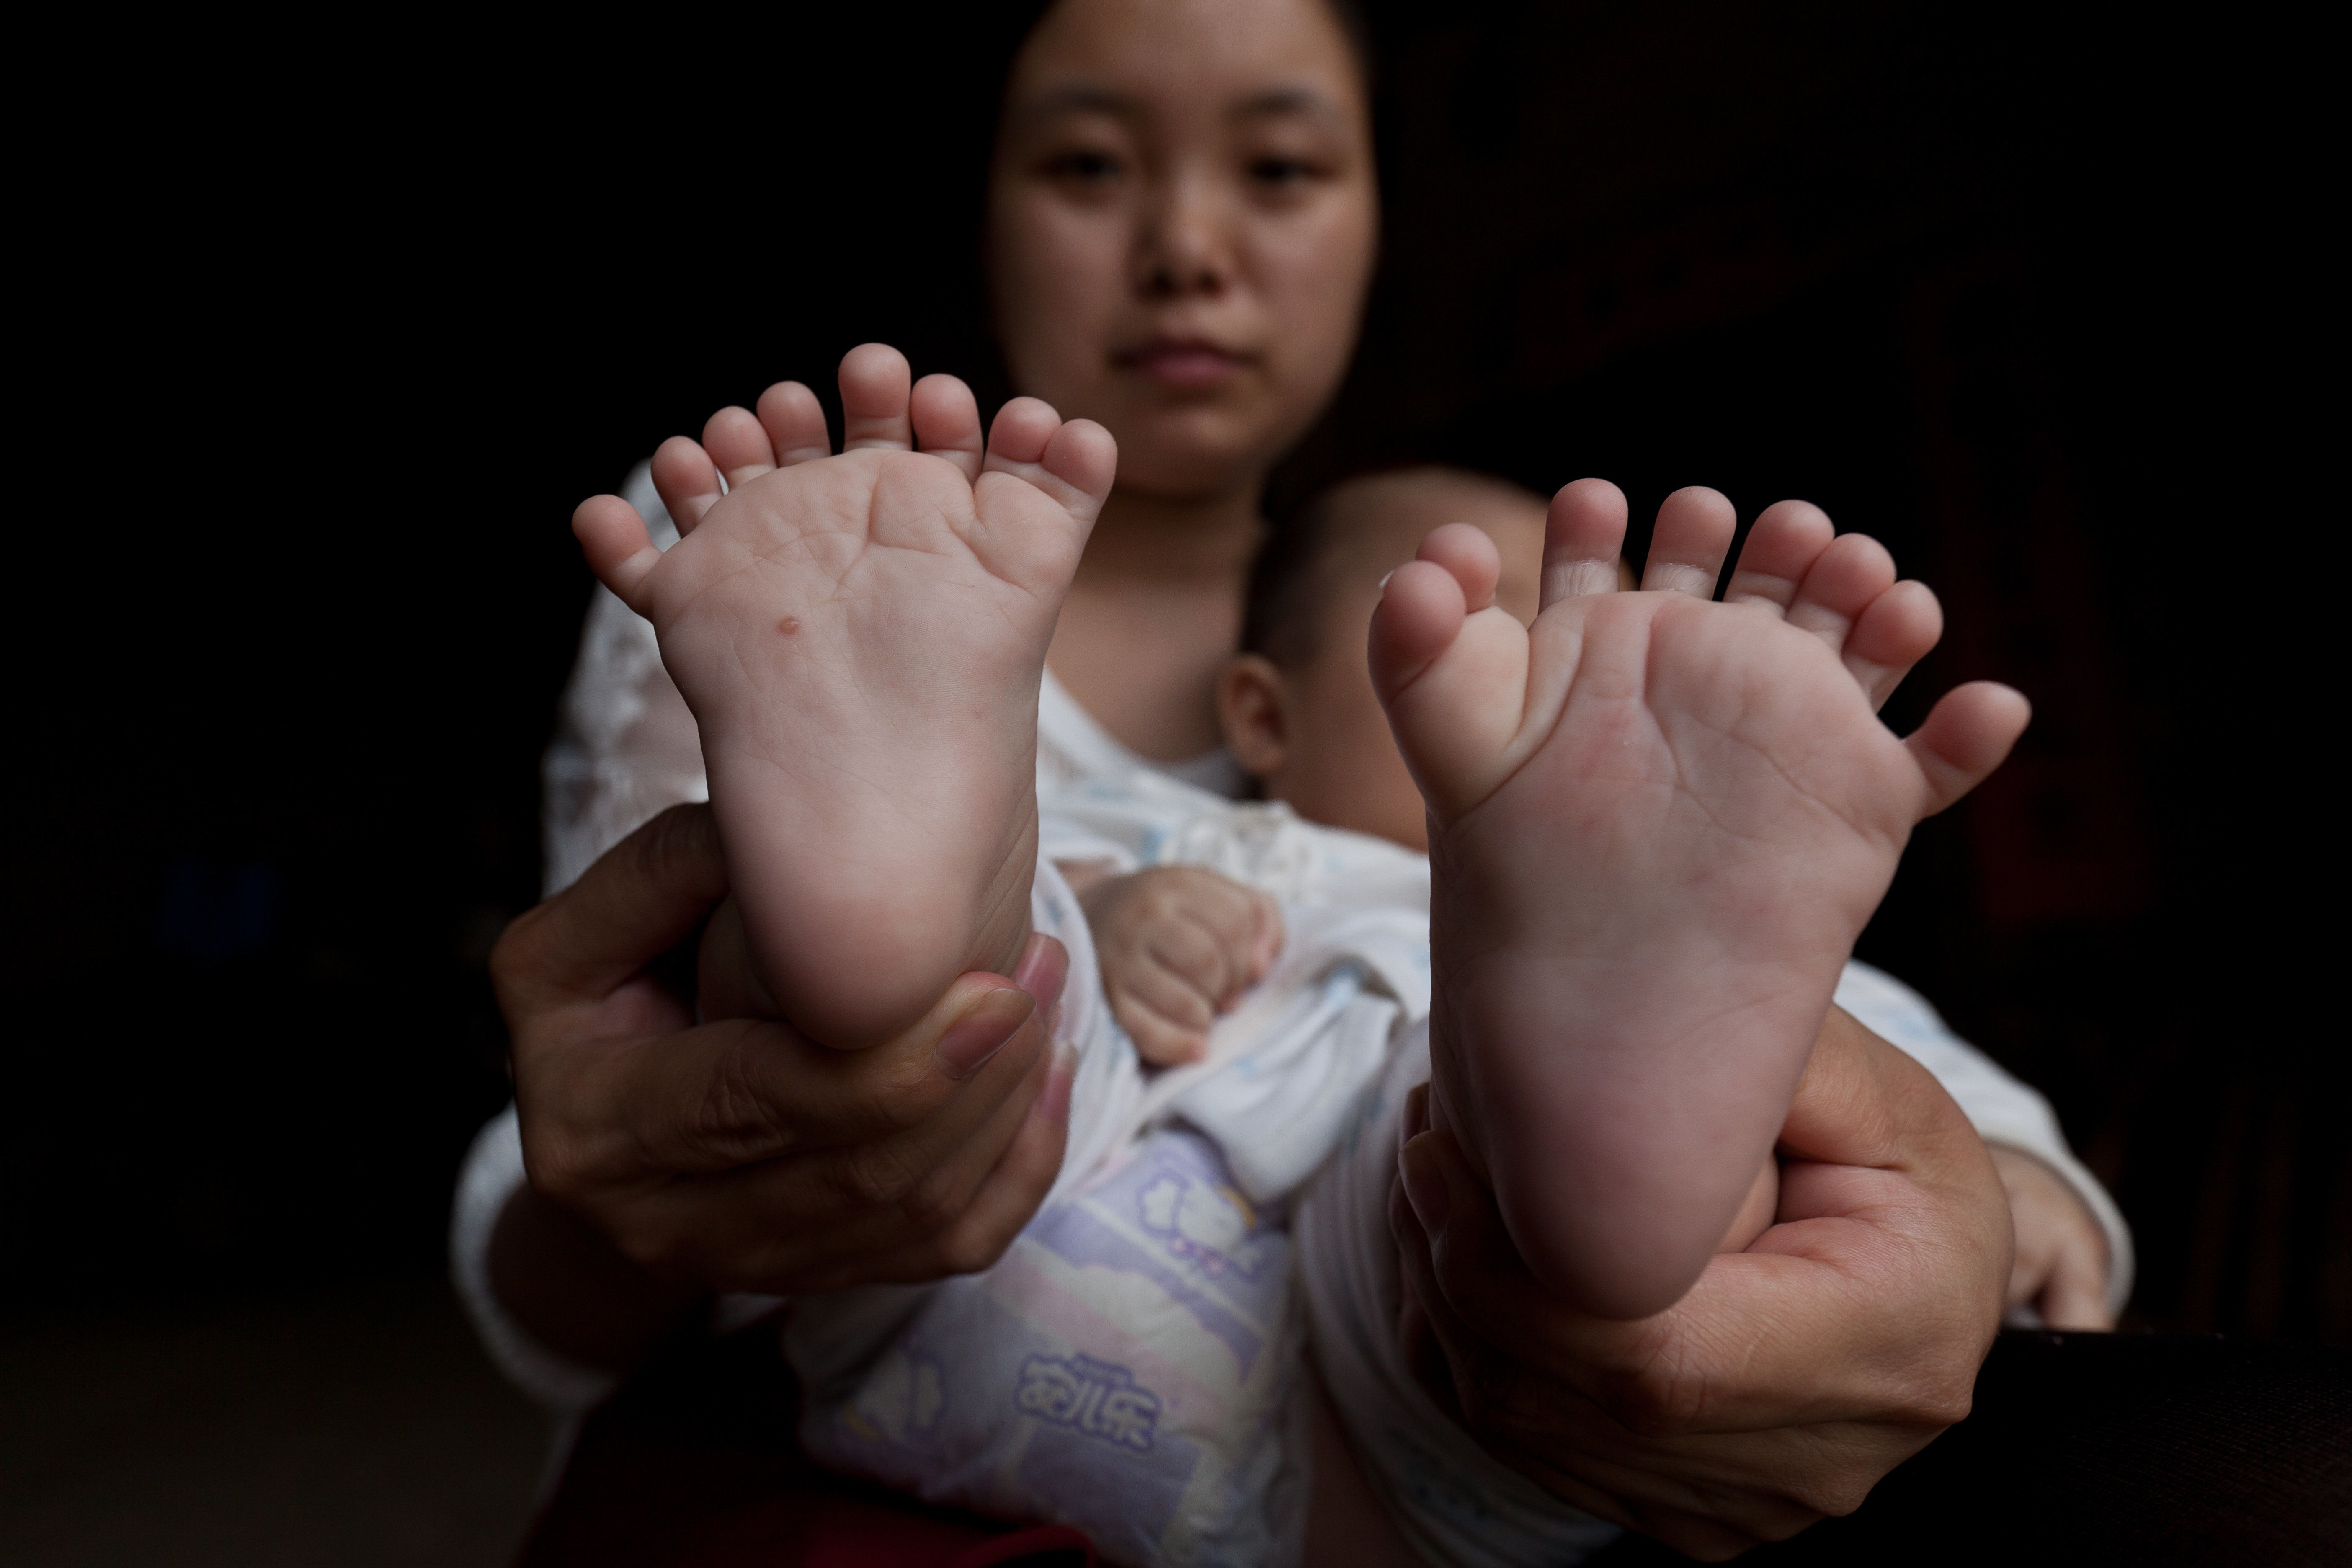 YUEYANG, CHINA - MAY 01:  (CHINA OUT) A mother shows her 3-month-old baby boy's feet with 16 toes at Zhongping village on May 1, 2016 in Pingjiang County, Yueyang City, Hunan Province of China. Hong Hong was a 3-month-old baby boy who was born with 15 fingers and 16 toes. He has two palms on each hand with 7 fingers on right hand and 8 fingers on left hand. He also has 8 toes on each foot. Hong Hong's mother had 6 fingers on each of her hands and 6 toes on each of her feet. A doctor at Hunan Province People's Hospital told Hong's father that his son should have an operation between six months and 1 year old.  (Photo by VCG/VCG via Getty Images)